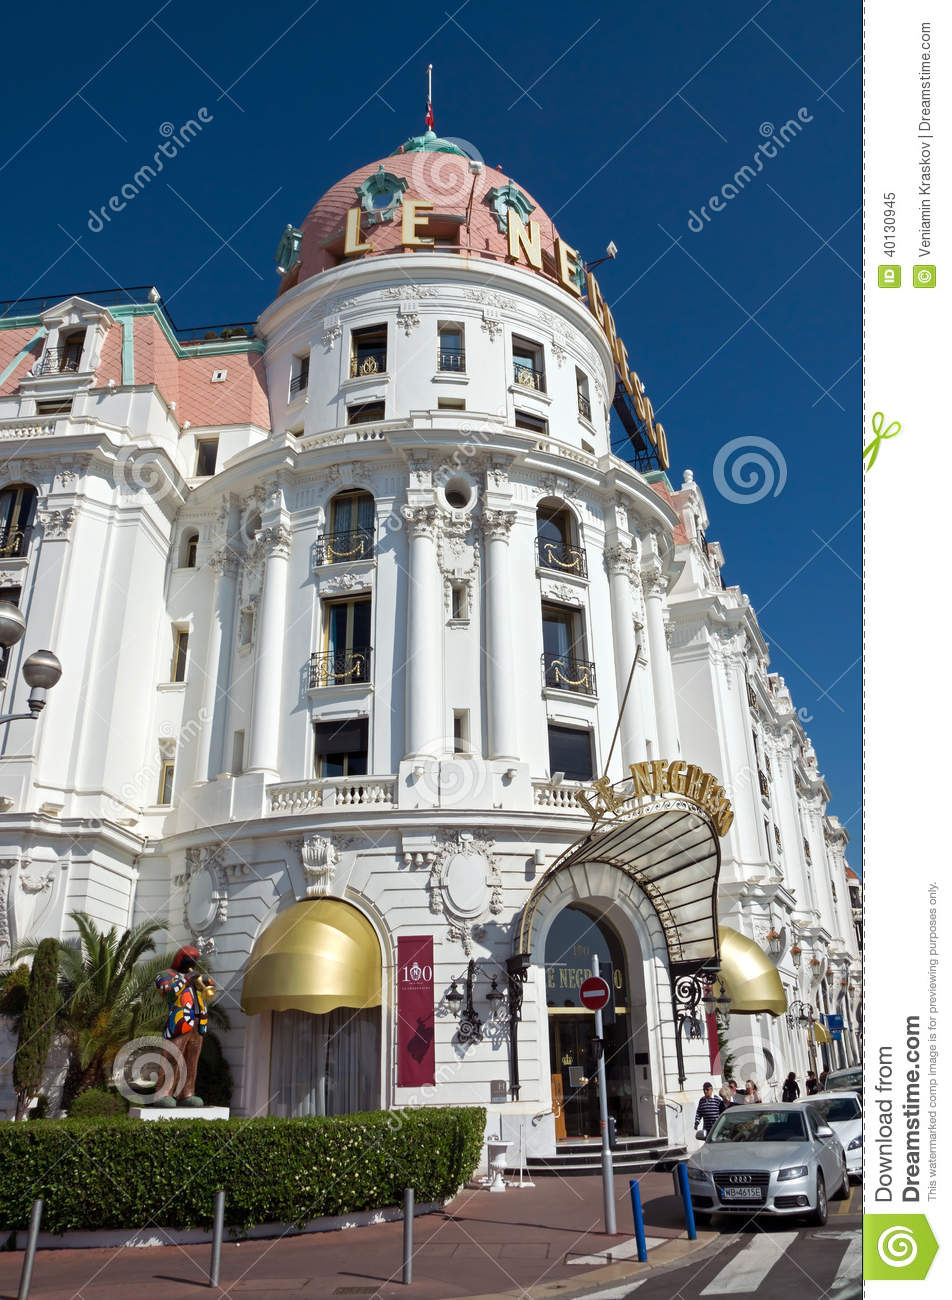 Nice hotel negresco editorial image image 40130945 for Luxury hotels in nice